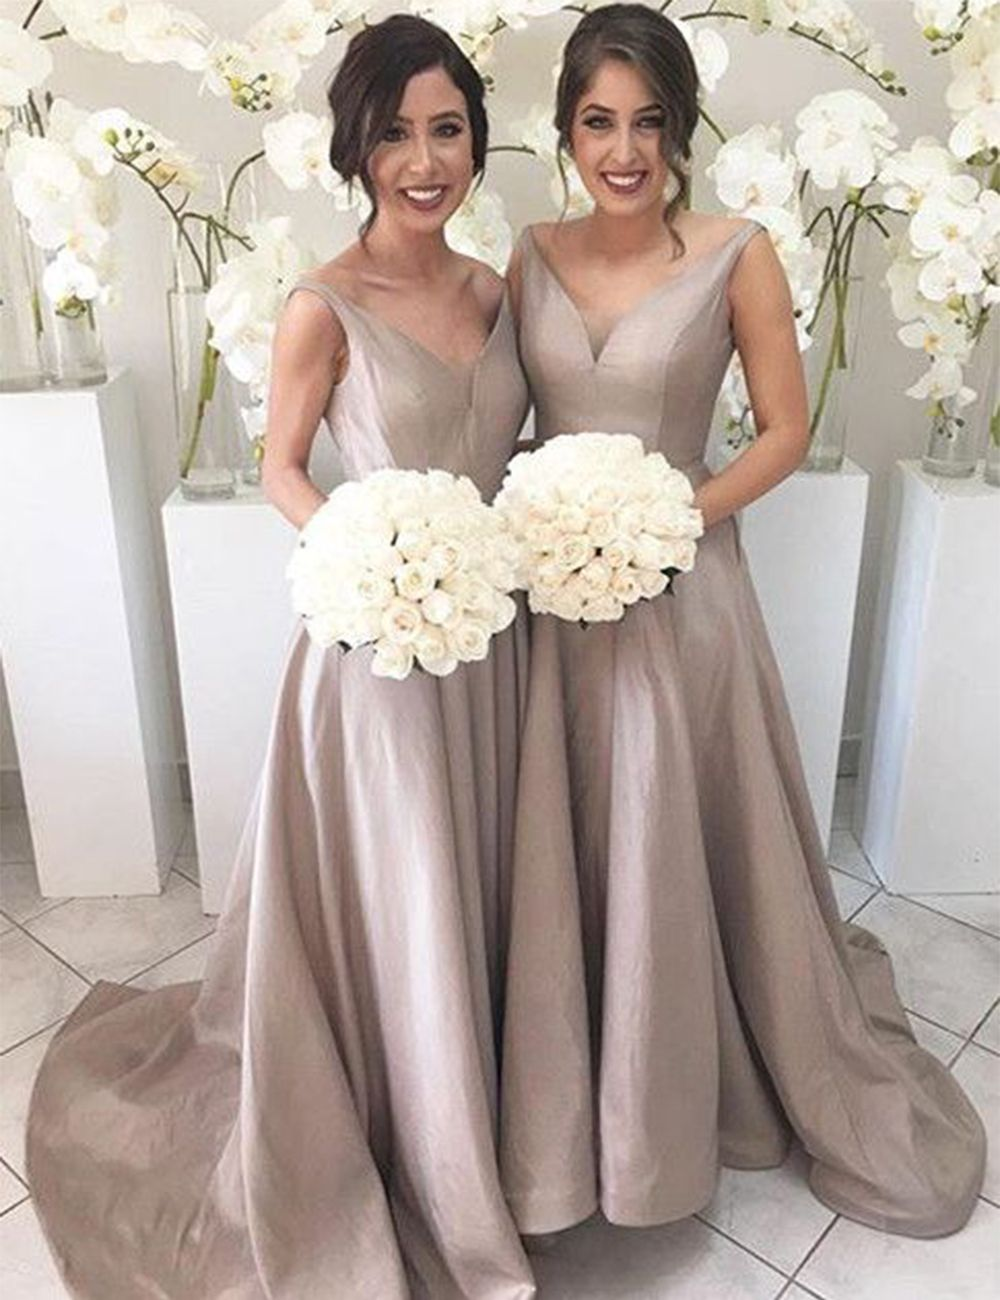 Love the fashion women champagne bridesmaid dresses sexy v neck love the fashion women champagne bridesmaid dresses sexy v neck satin bridesmaid dress long wedding party ombrellifo Gallery